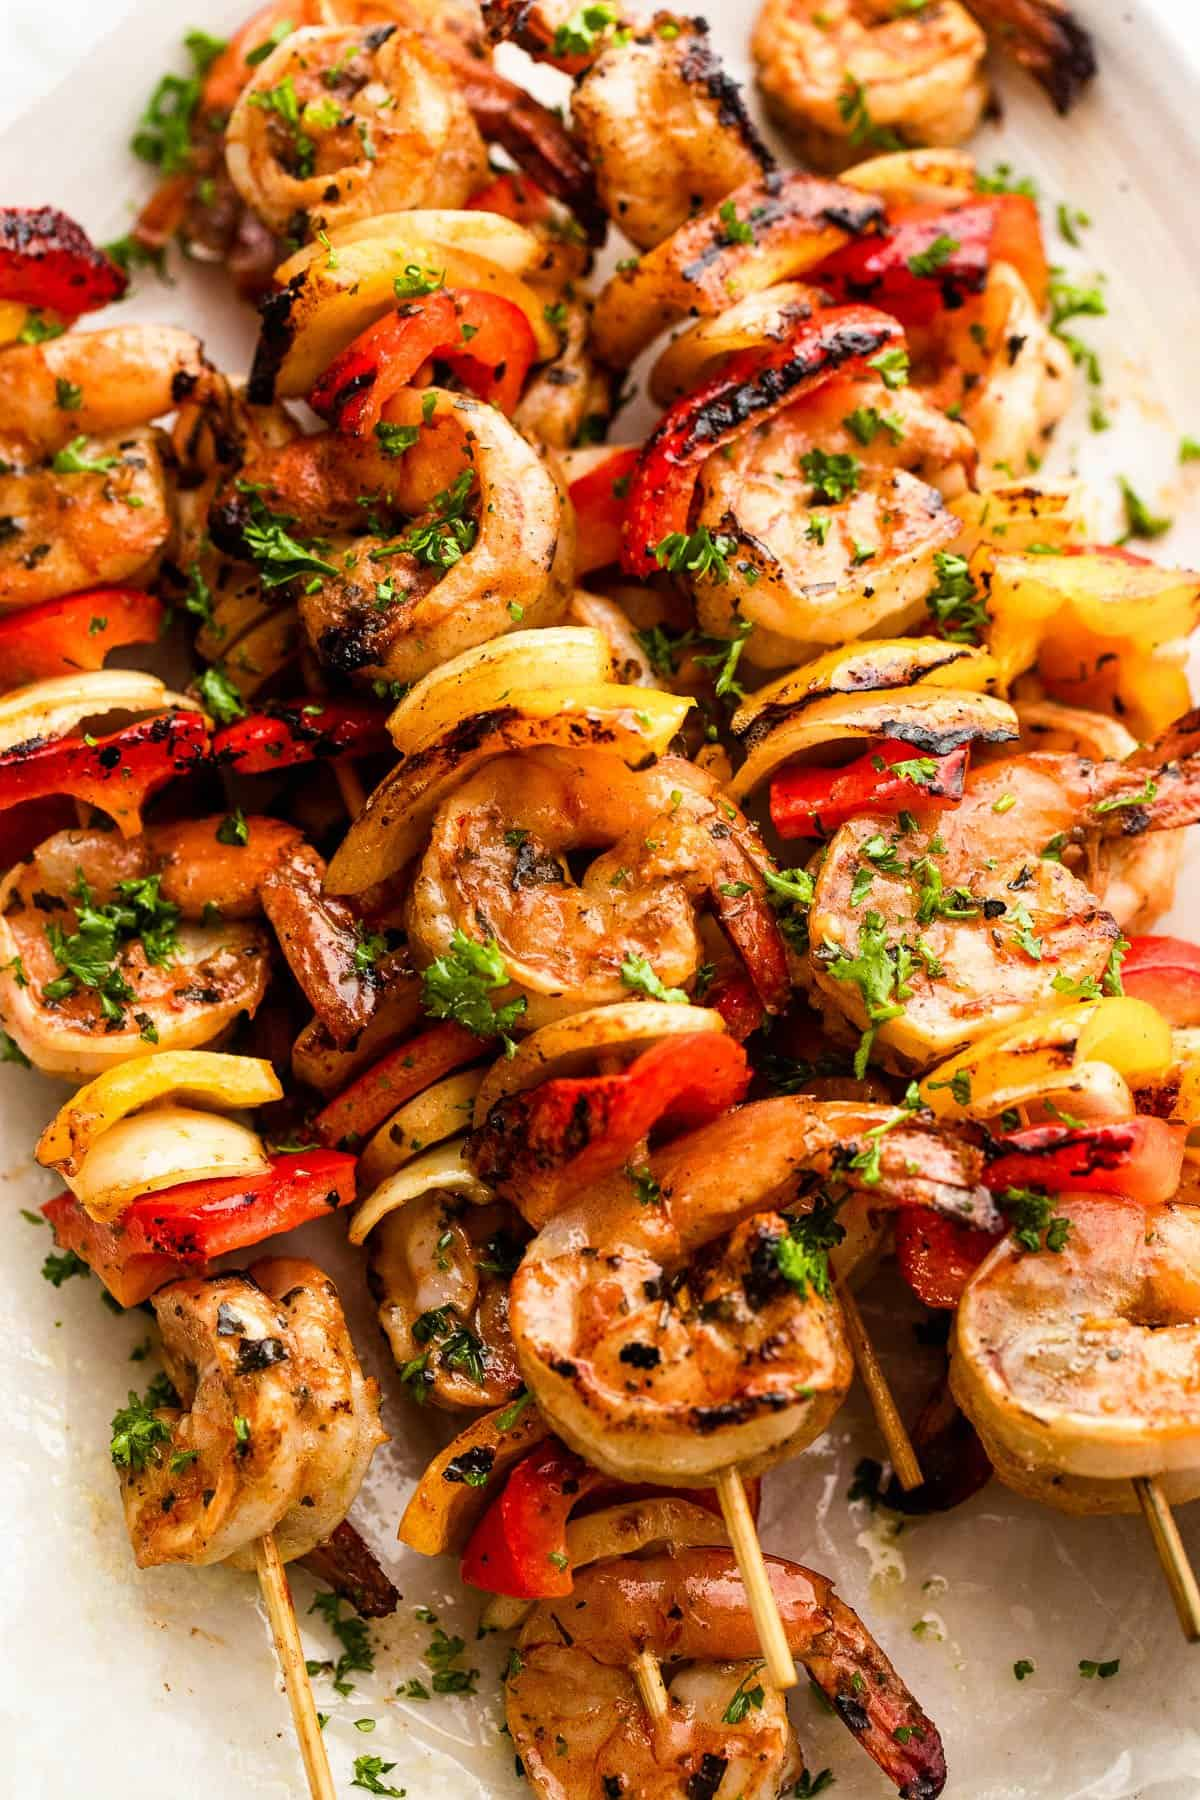 grilled shrimp, peppers, and onions, on skewers